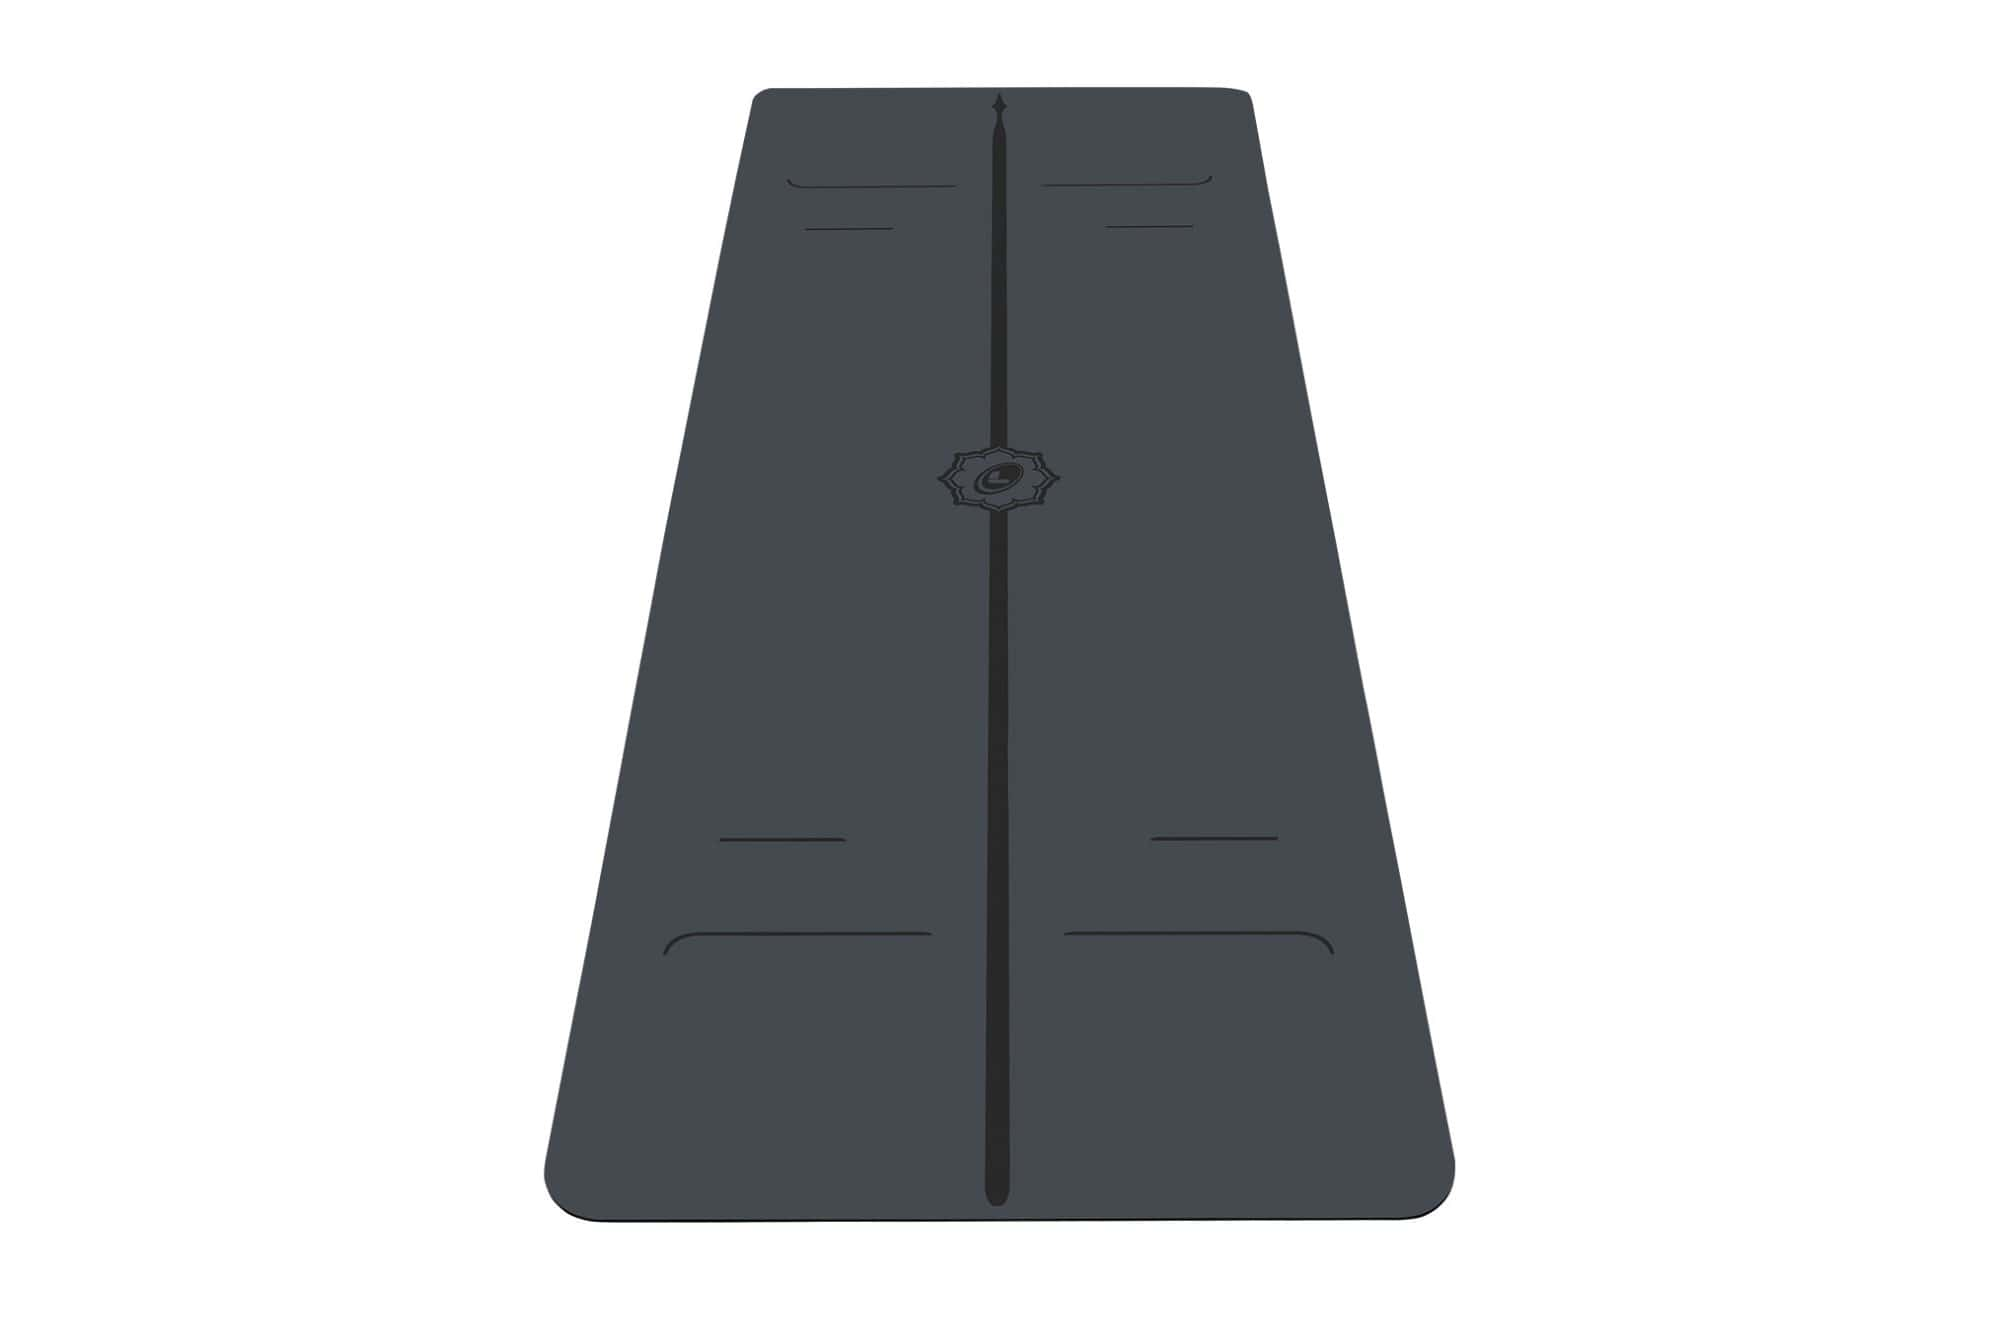 Portrait view of grey Evolve Yoga mat from Liforme